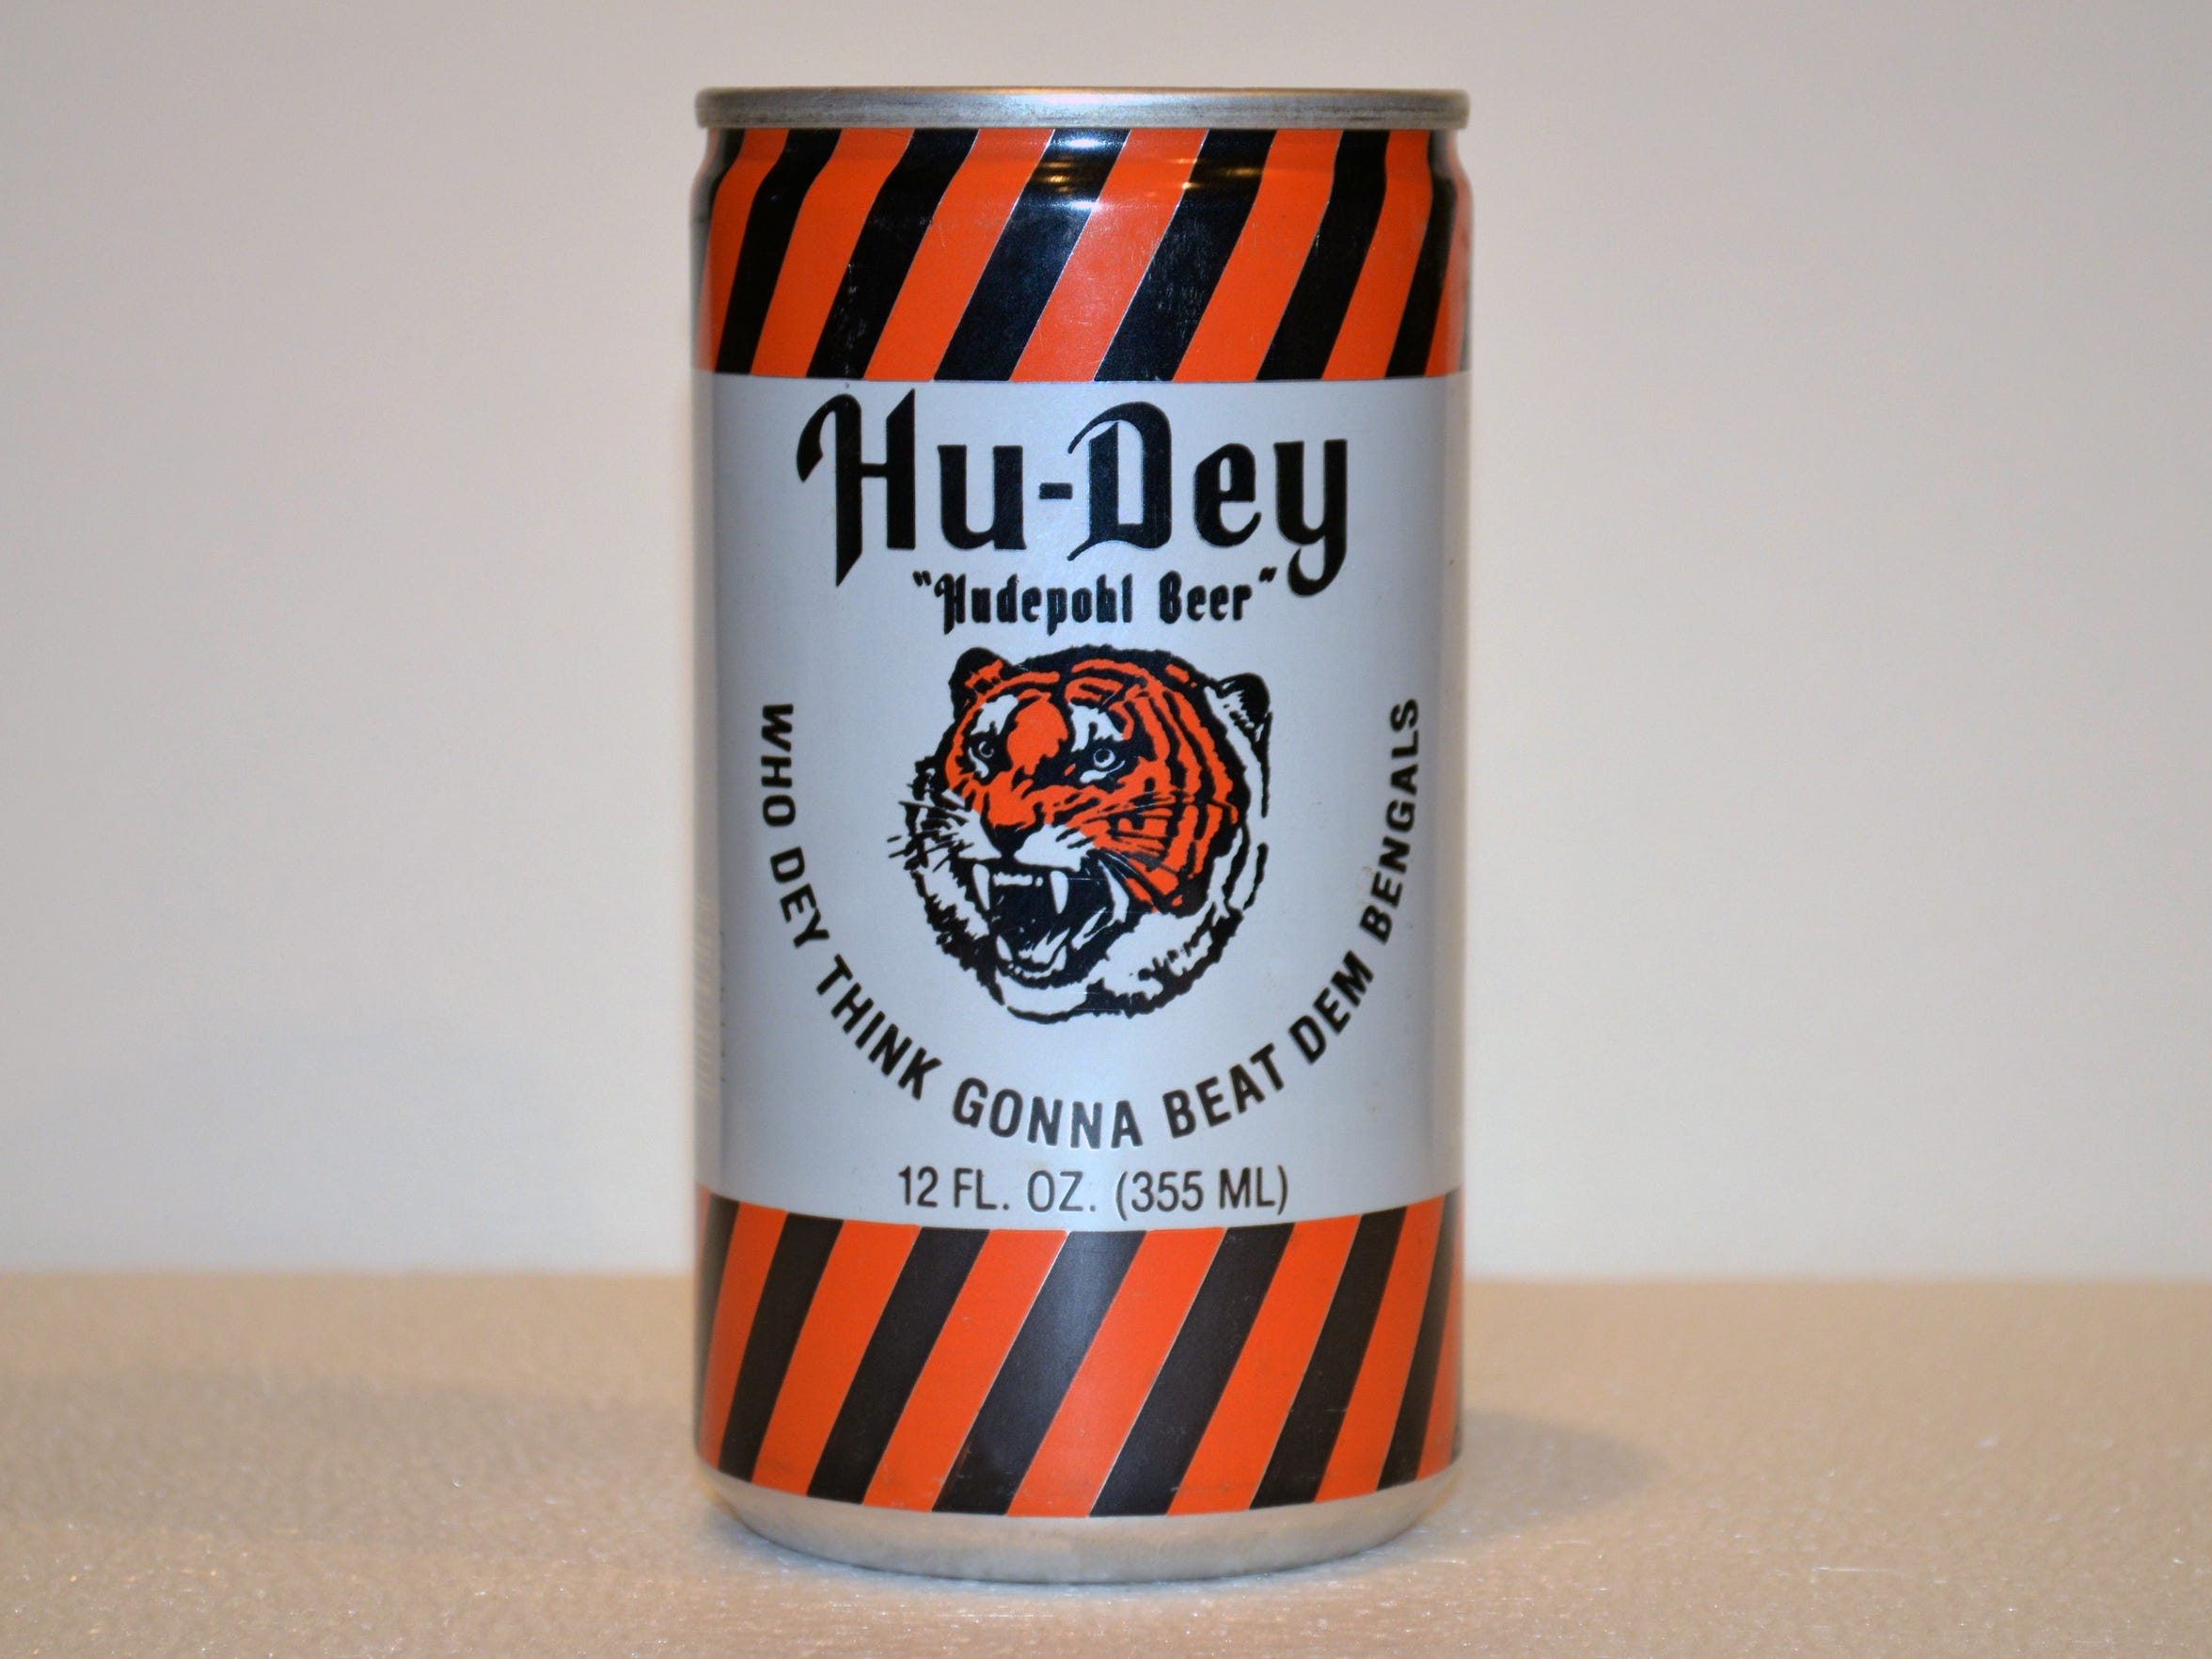 """Hudepohl Brewing celebrated the Super Bowl-bound Bengals during the 1981 season with the first Hu-Dey beer can.  Why was it a good association for the brand? """"Because all sports is entertainment for the fan and who doesn't like a good beer while watching sports to relax?,"""" said Greg Hardman, president and CEO of Christian Moerlein Brewing Co. """"I do."""""""